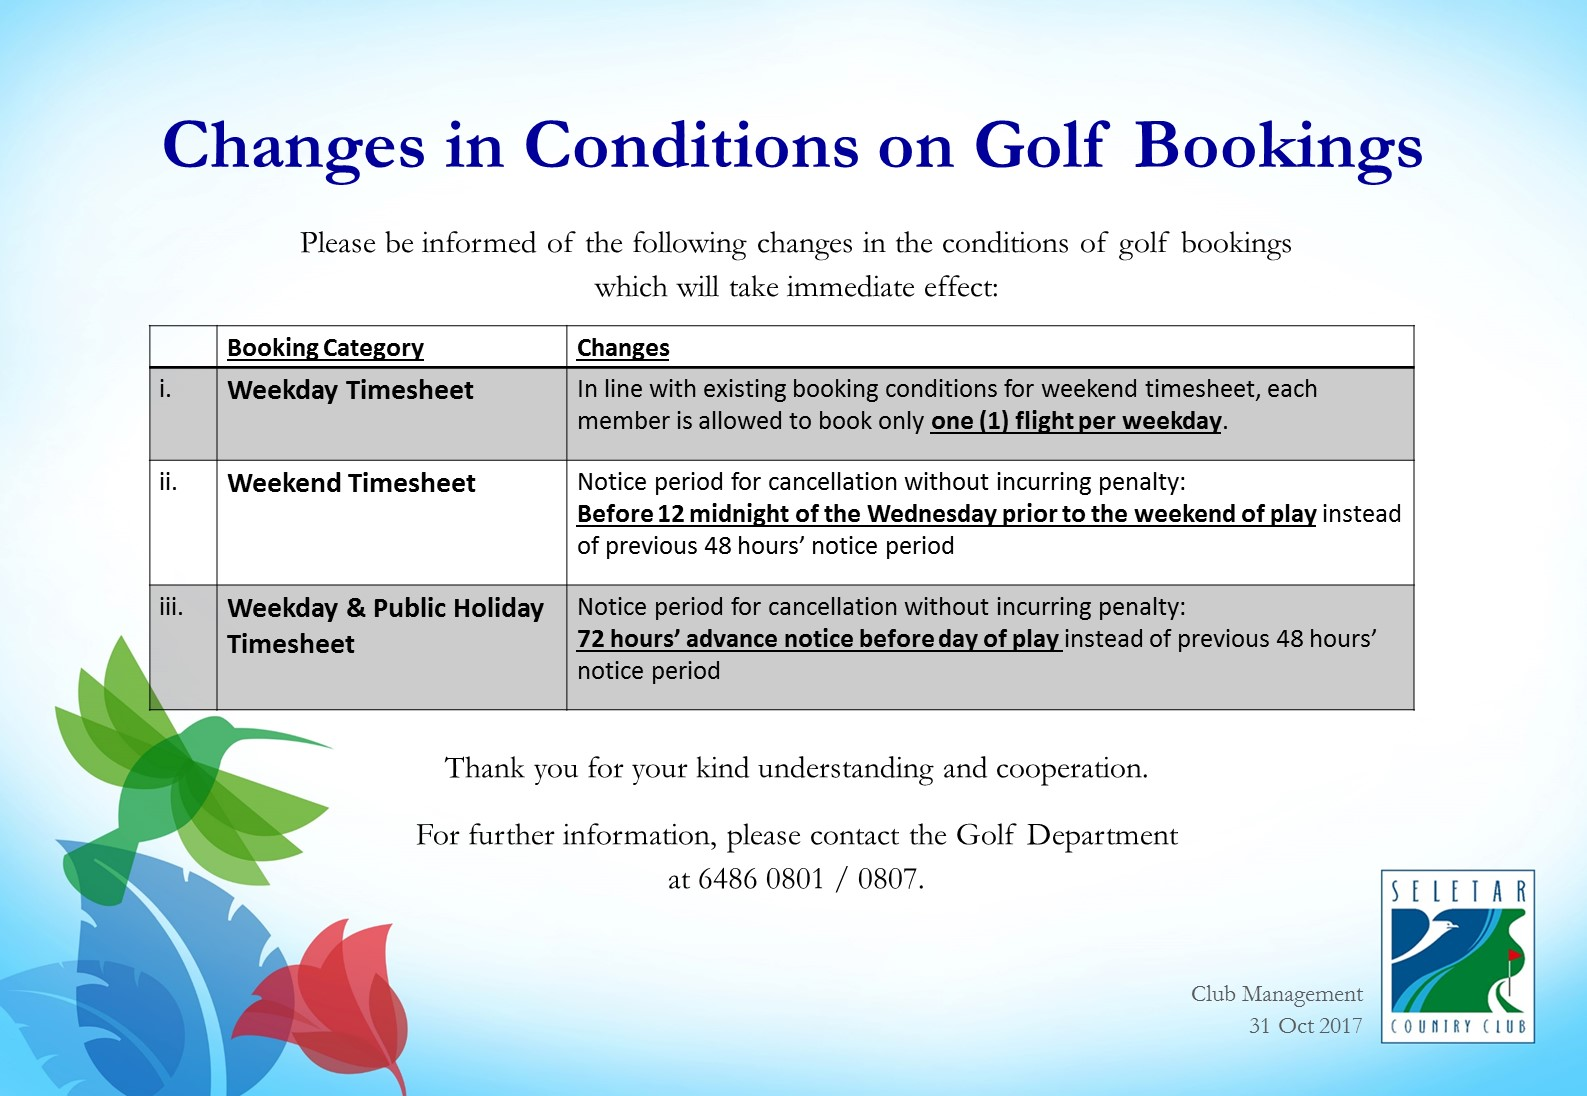 Changes in Timesheet booking conditions